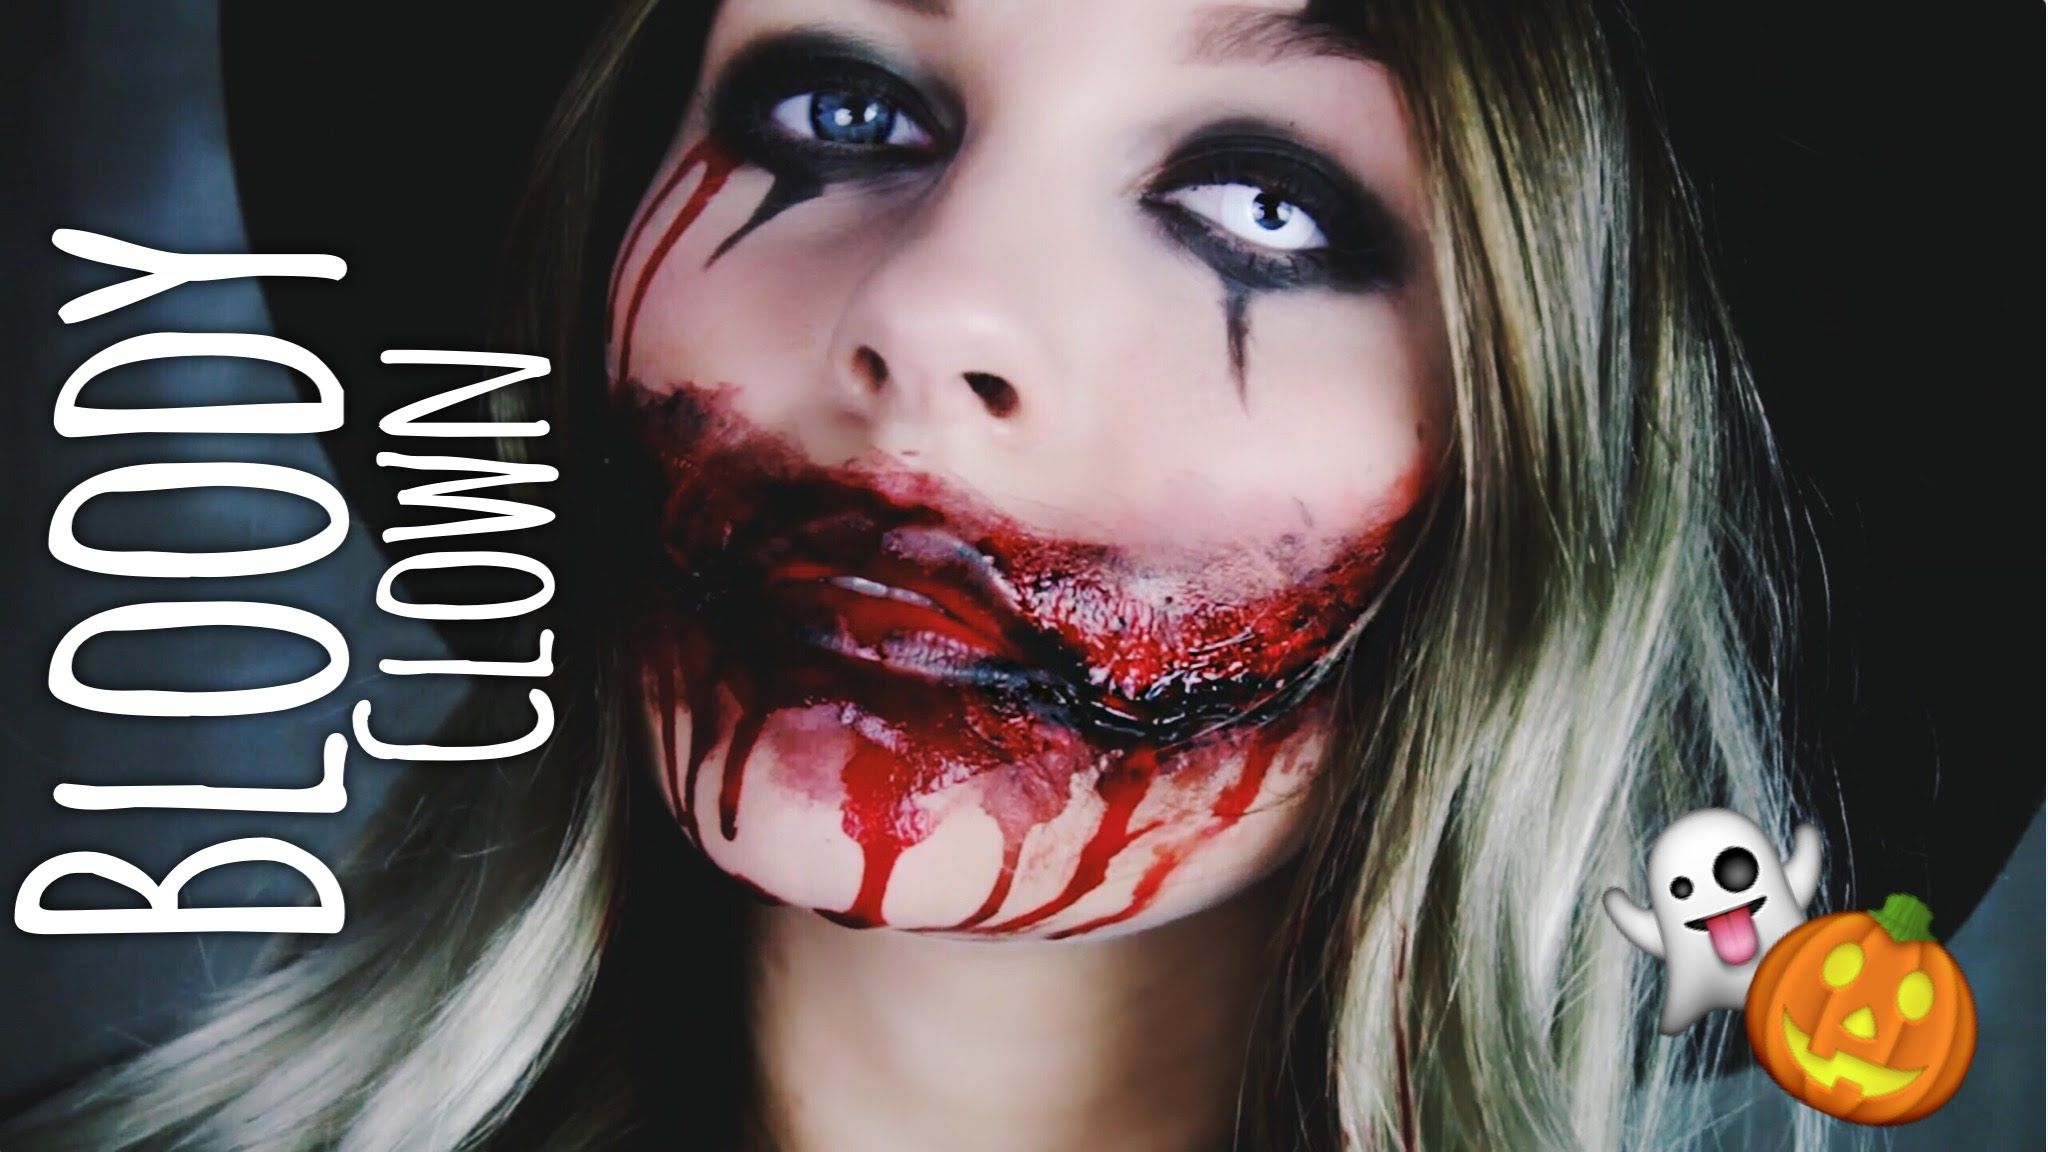 100+ [ Halloween Makeup Ideas Youtube ] | Easy And Scary Halloween ...